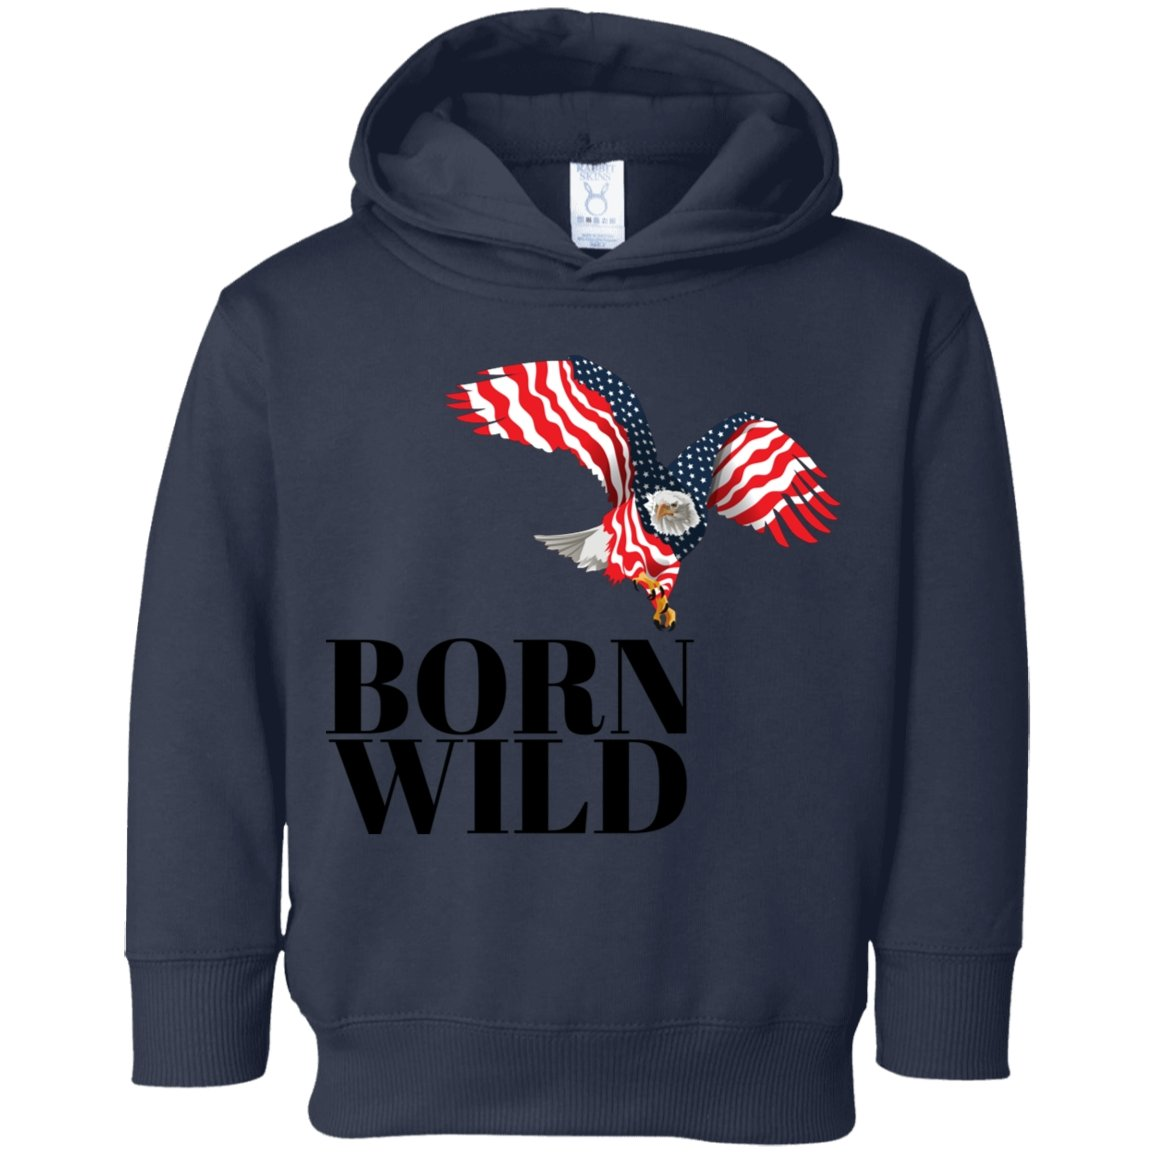 "Sweatshirts ""Born Wild"" Fleece Hoodie - 3 colors - ZERO TO THREE CLUB Sweatshirts"